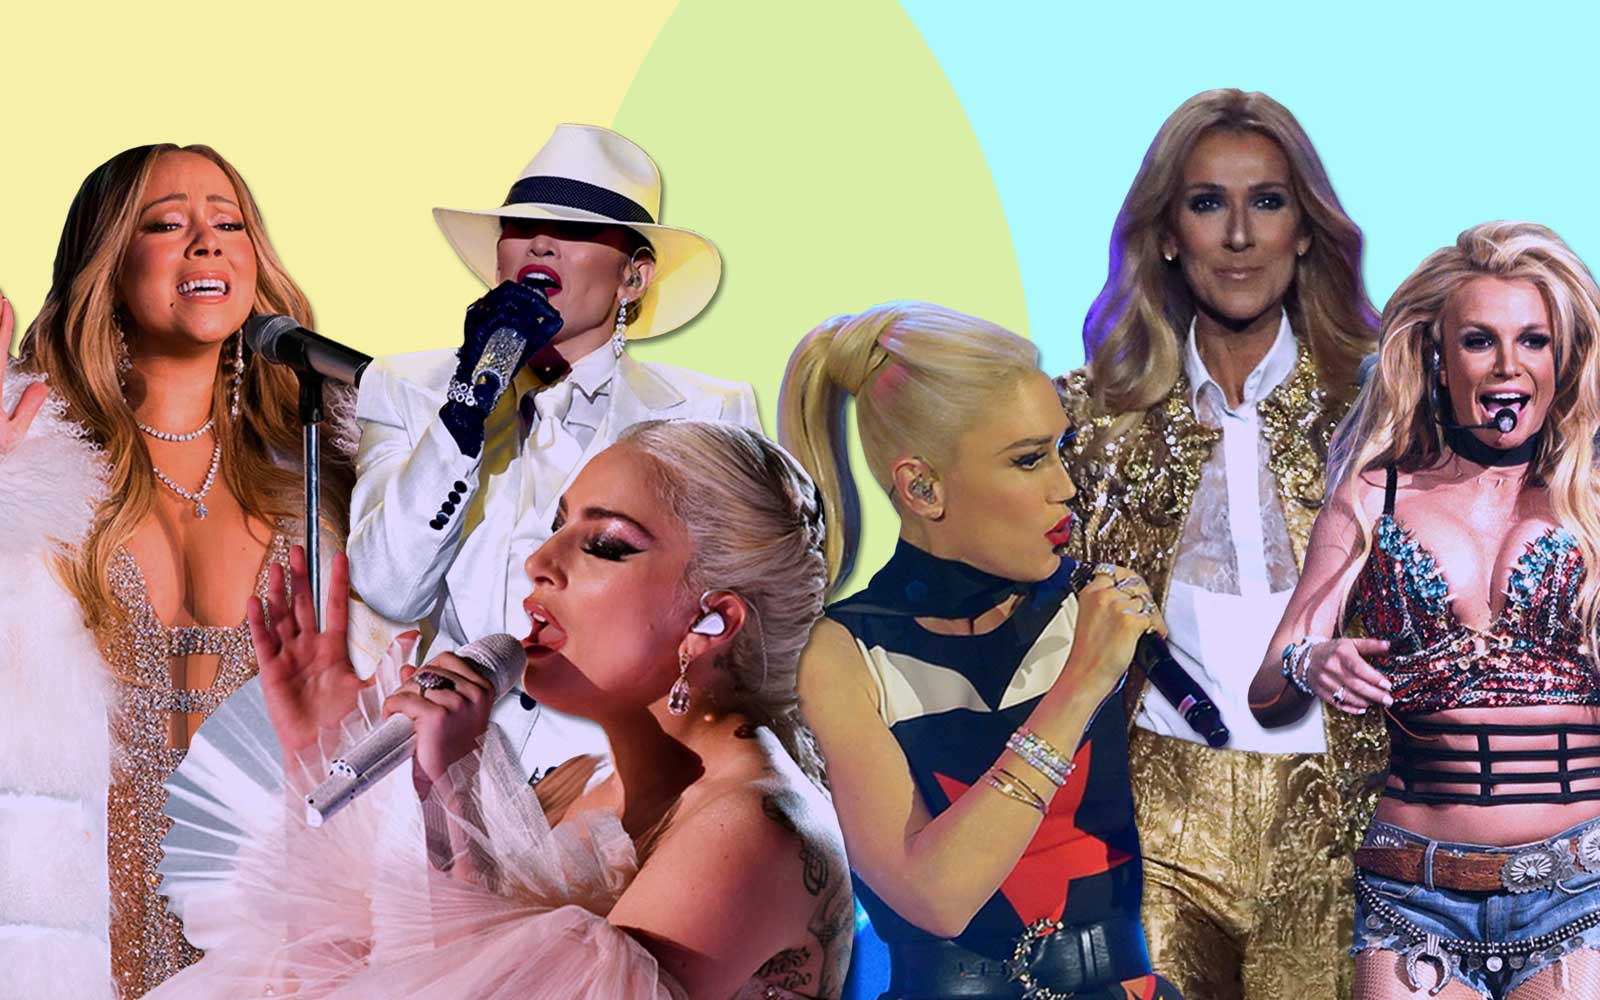 From Cher to Mariah Carey to Lady Gaga to Aerosmith: All the Stars That Are Performing in Las Vegas